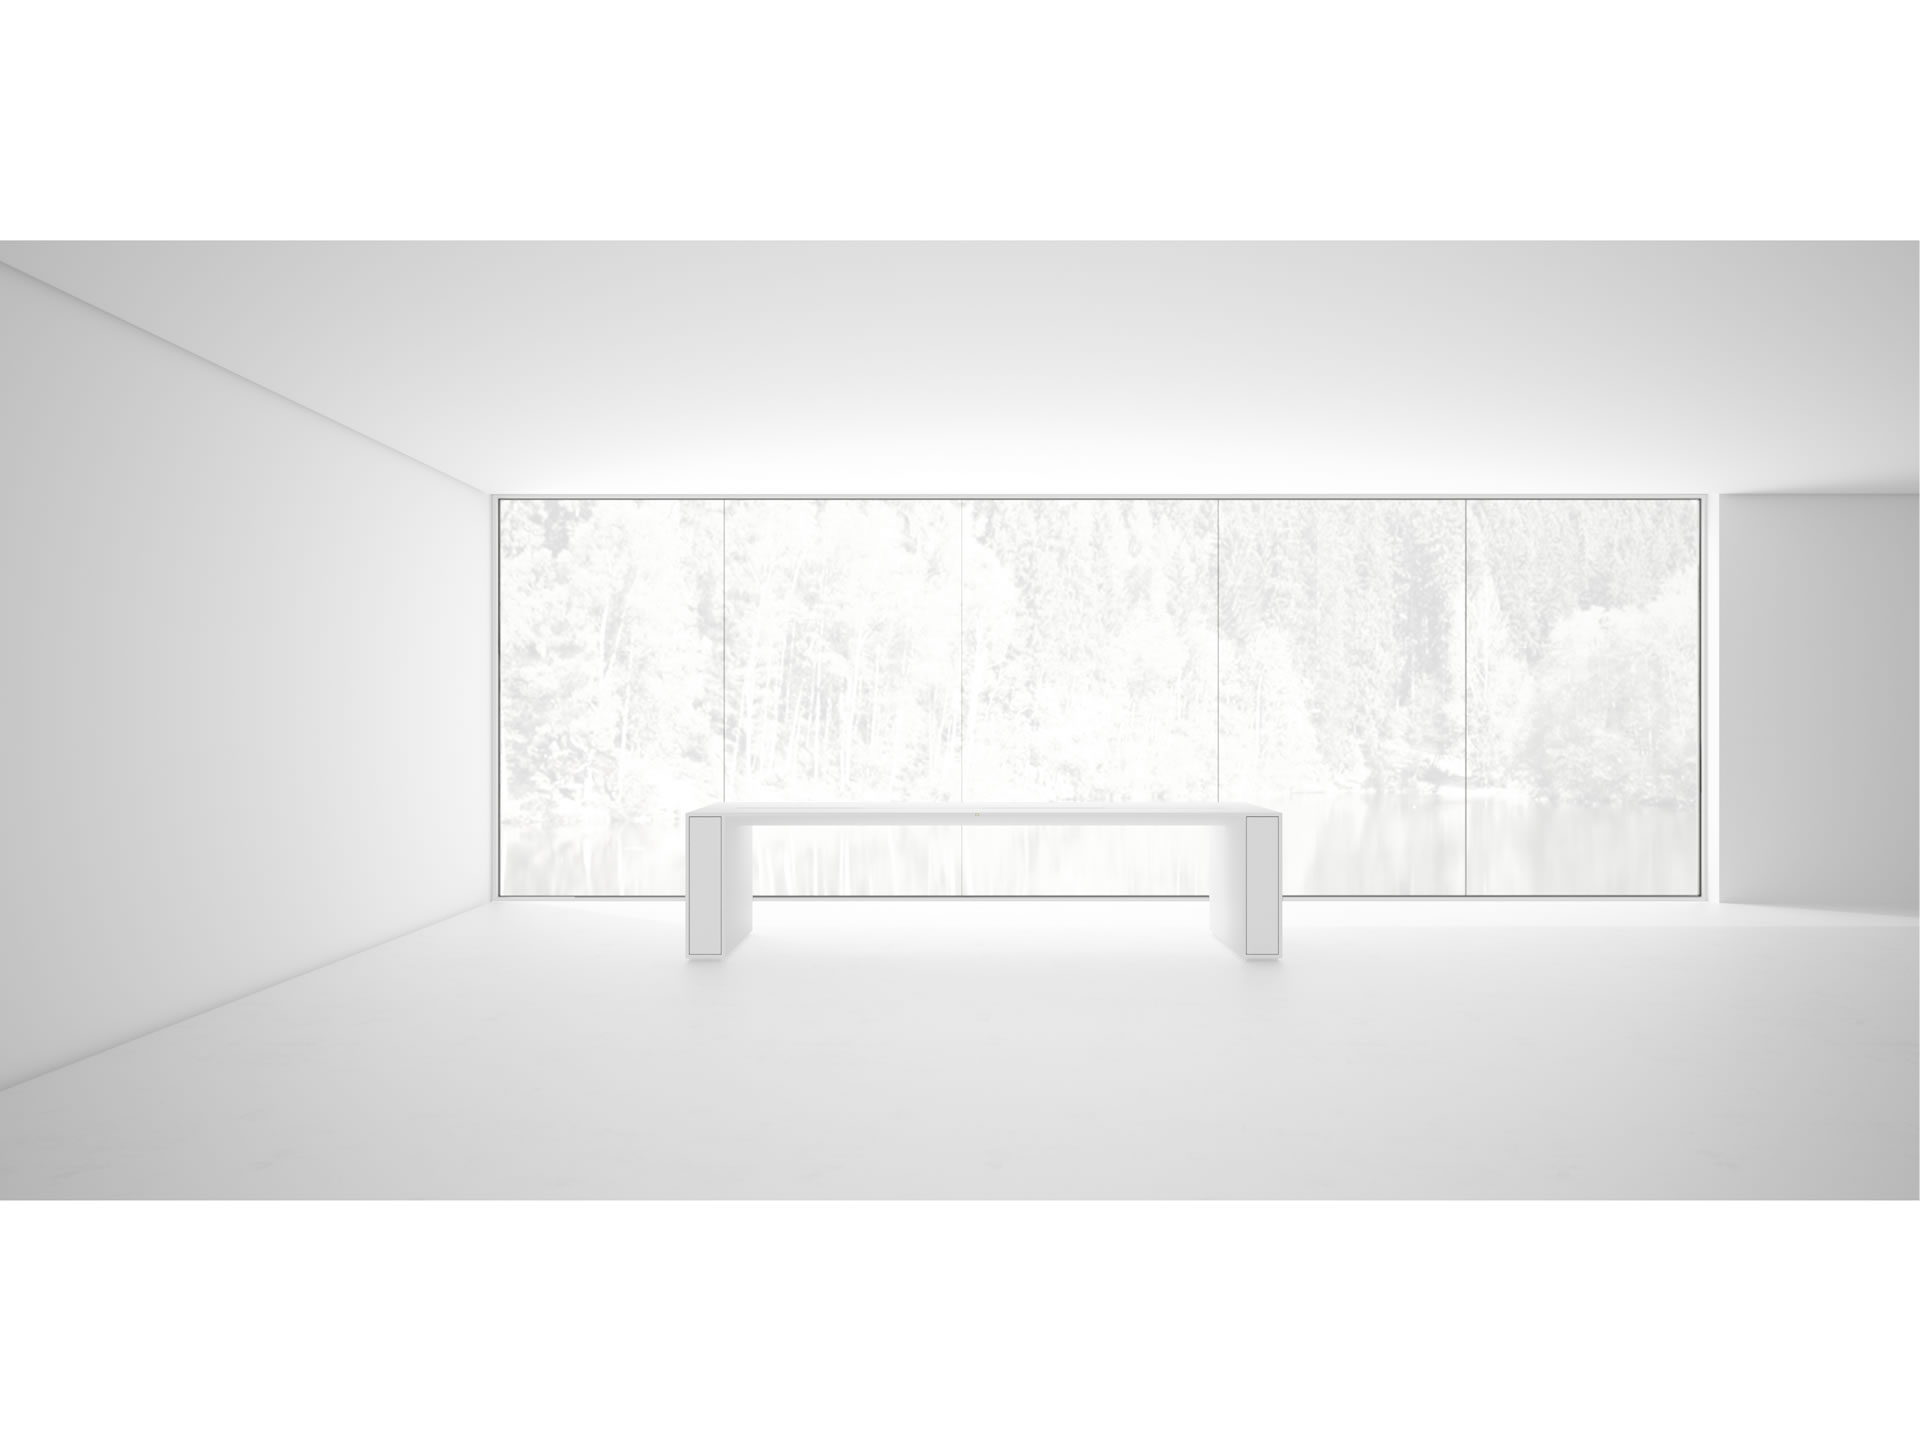 RECHTECK CONFERENCE TABLE I I Timeless White Meeting Table with Extensible Hifi Shelves